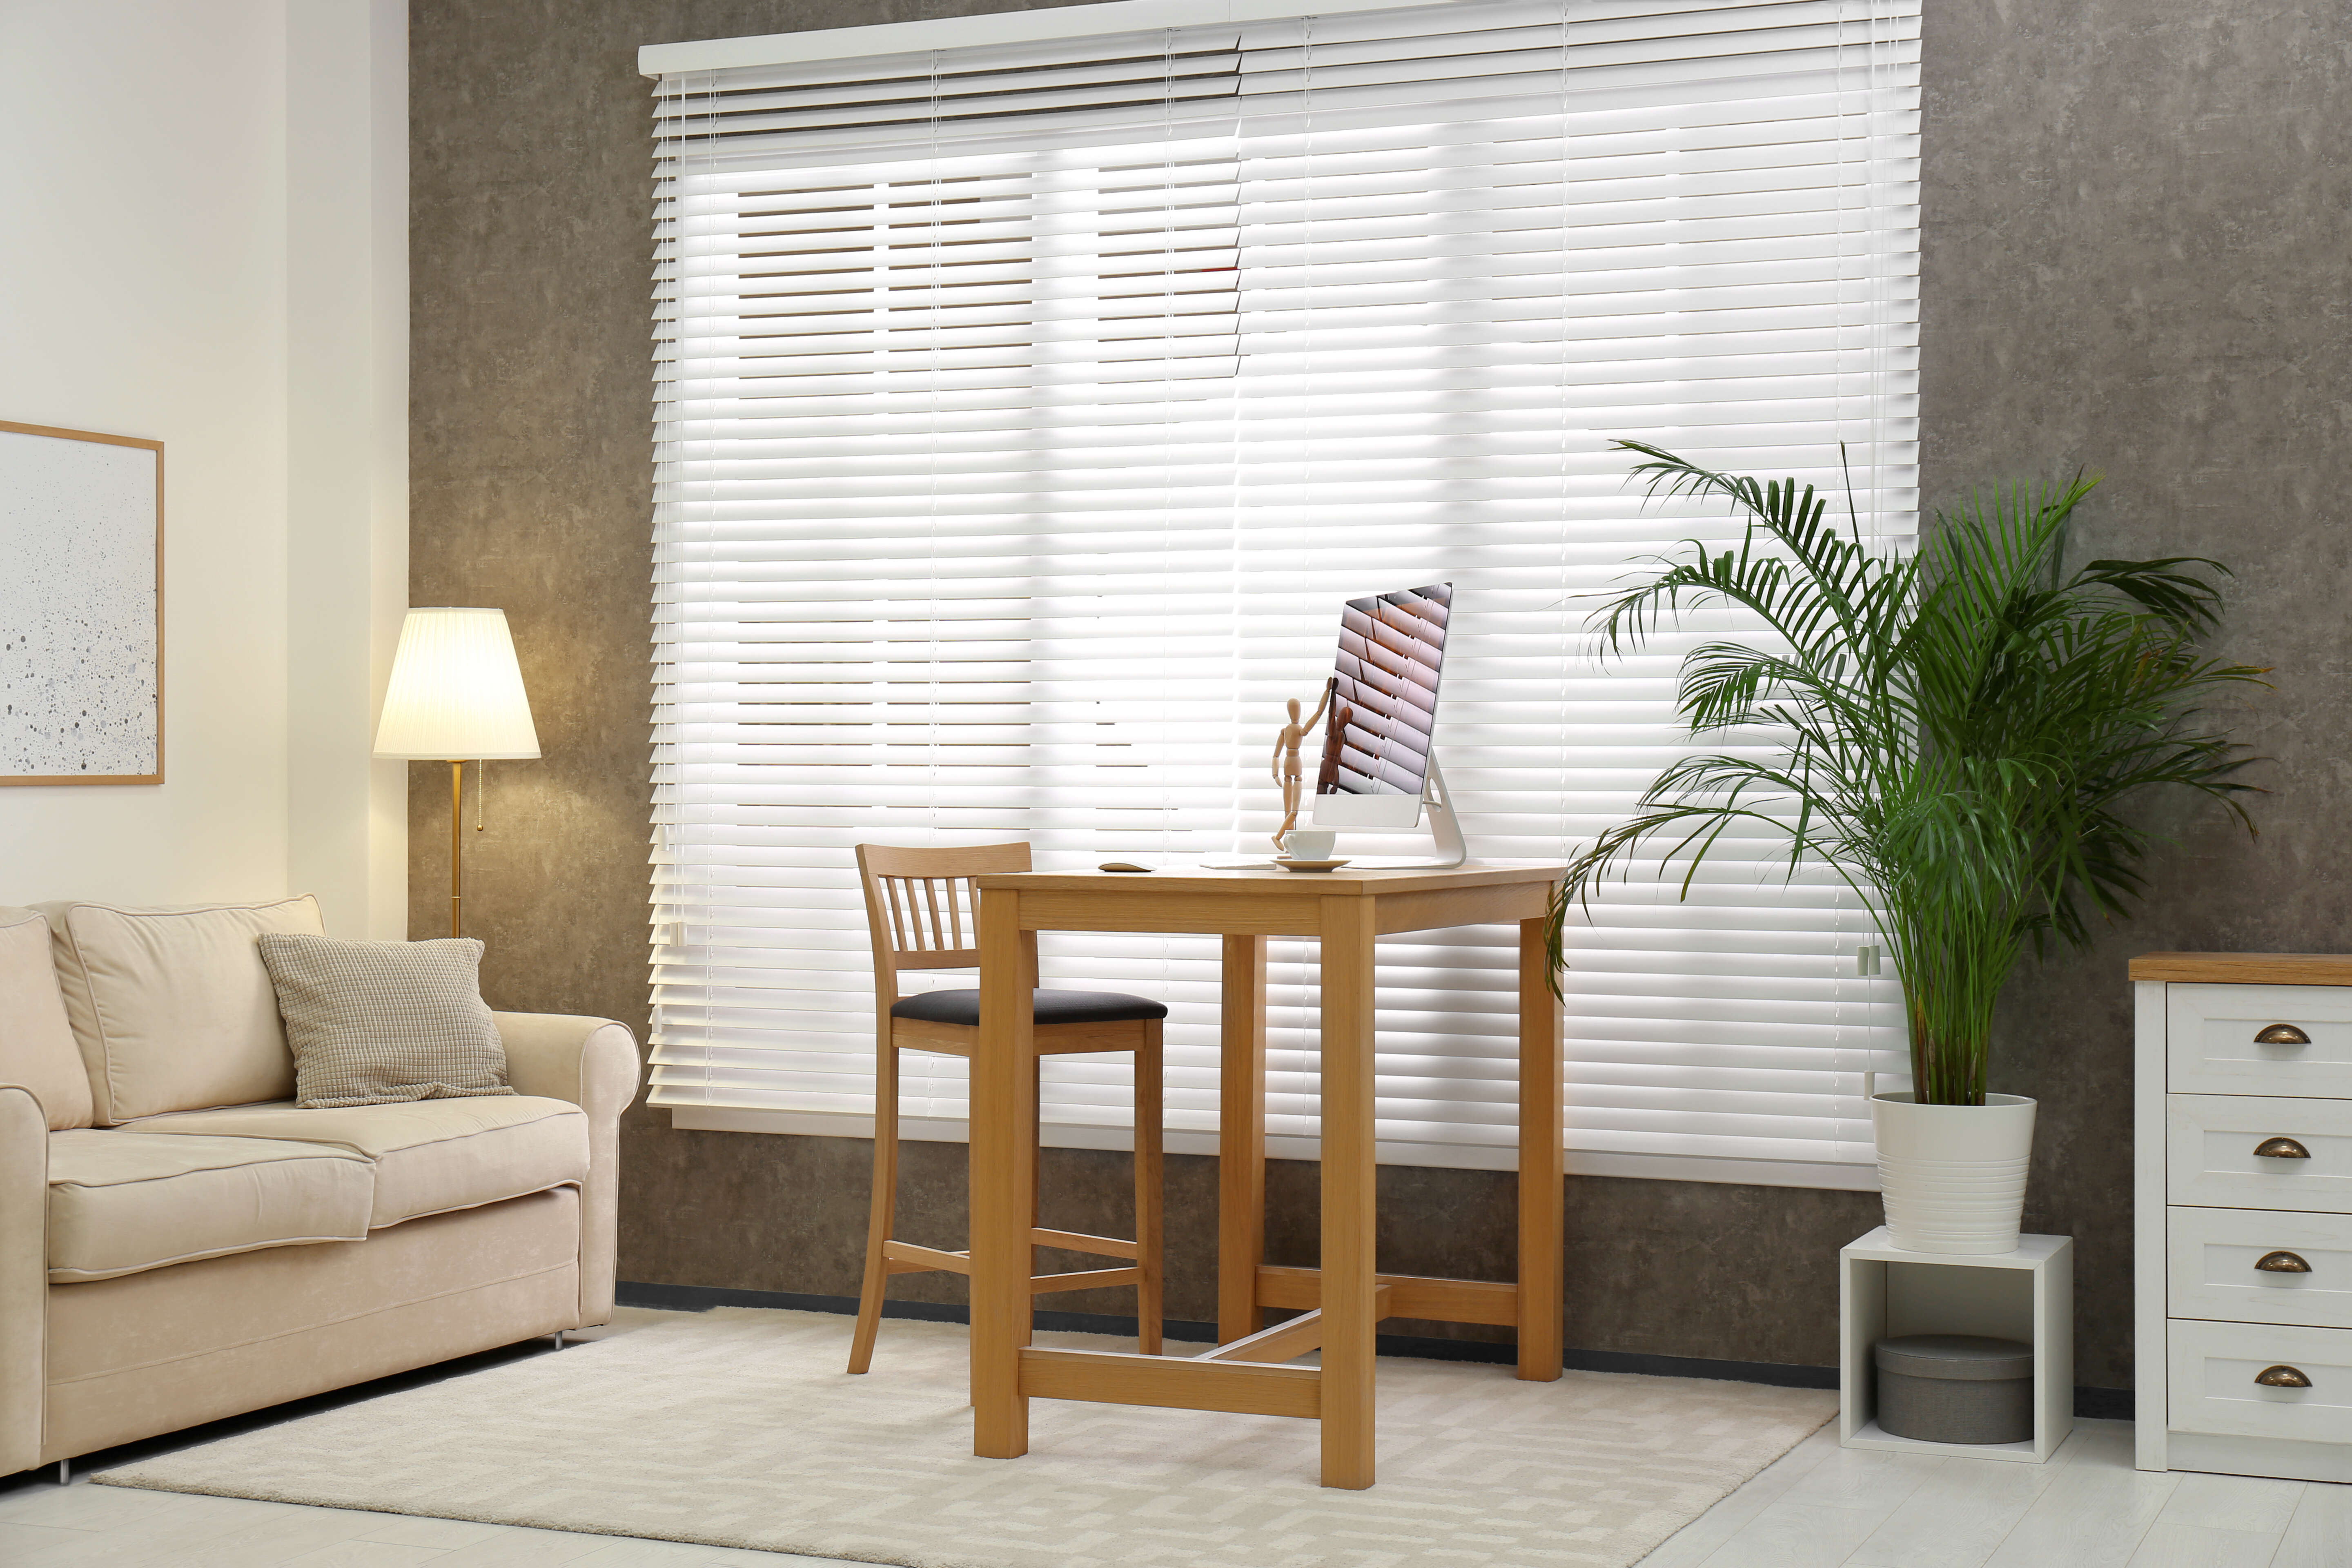 White blinds for window